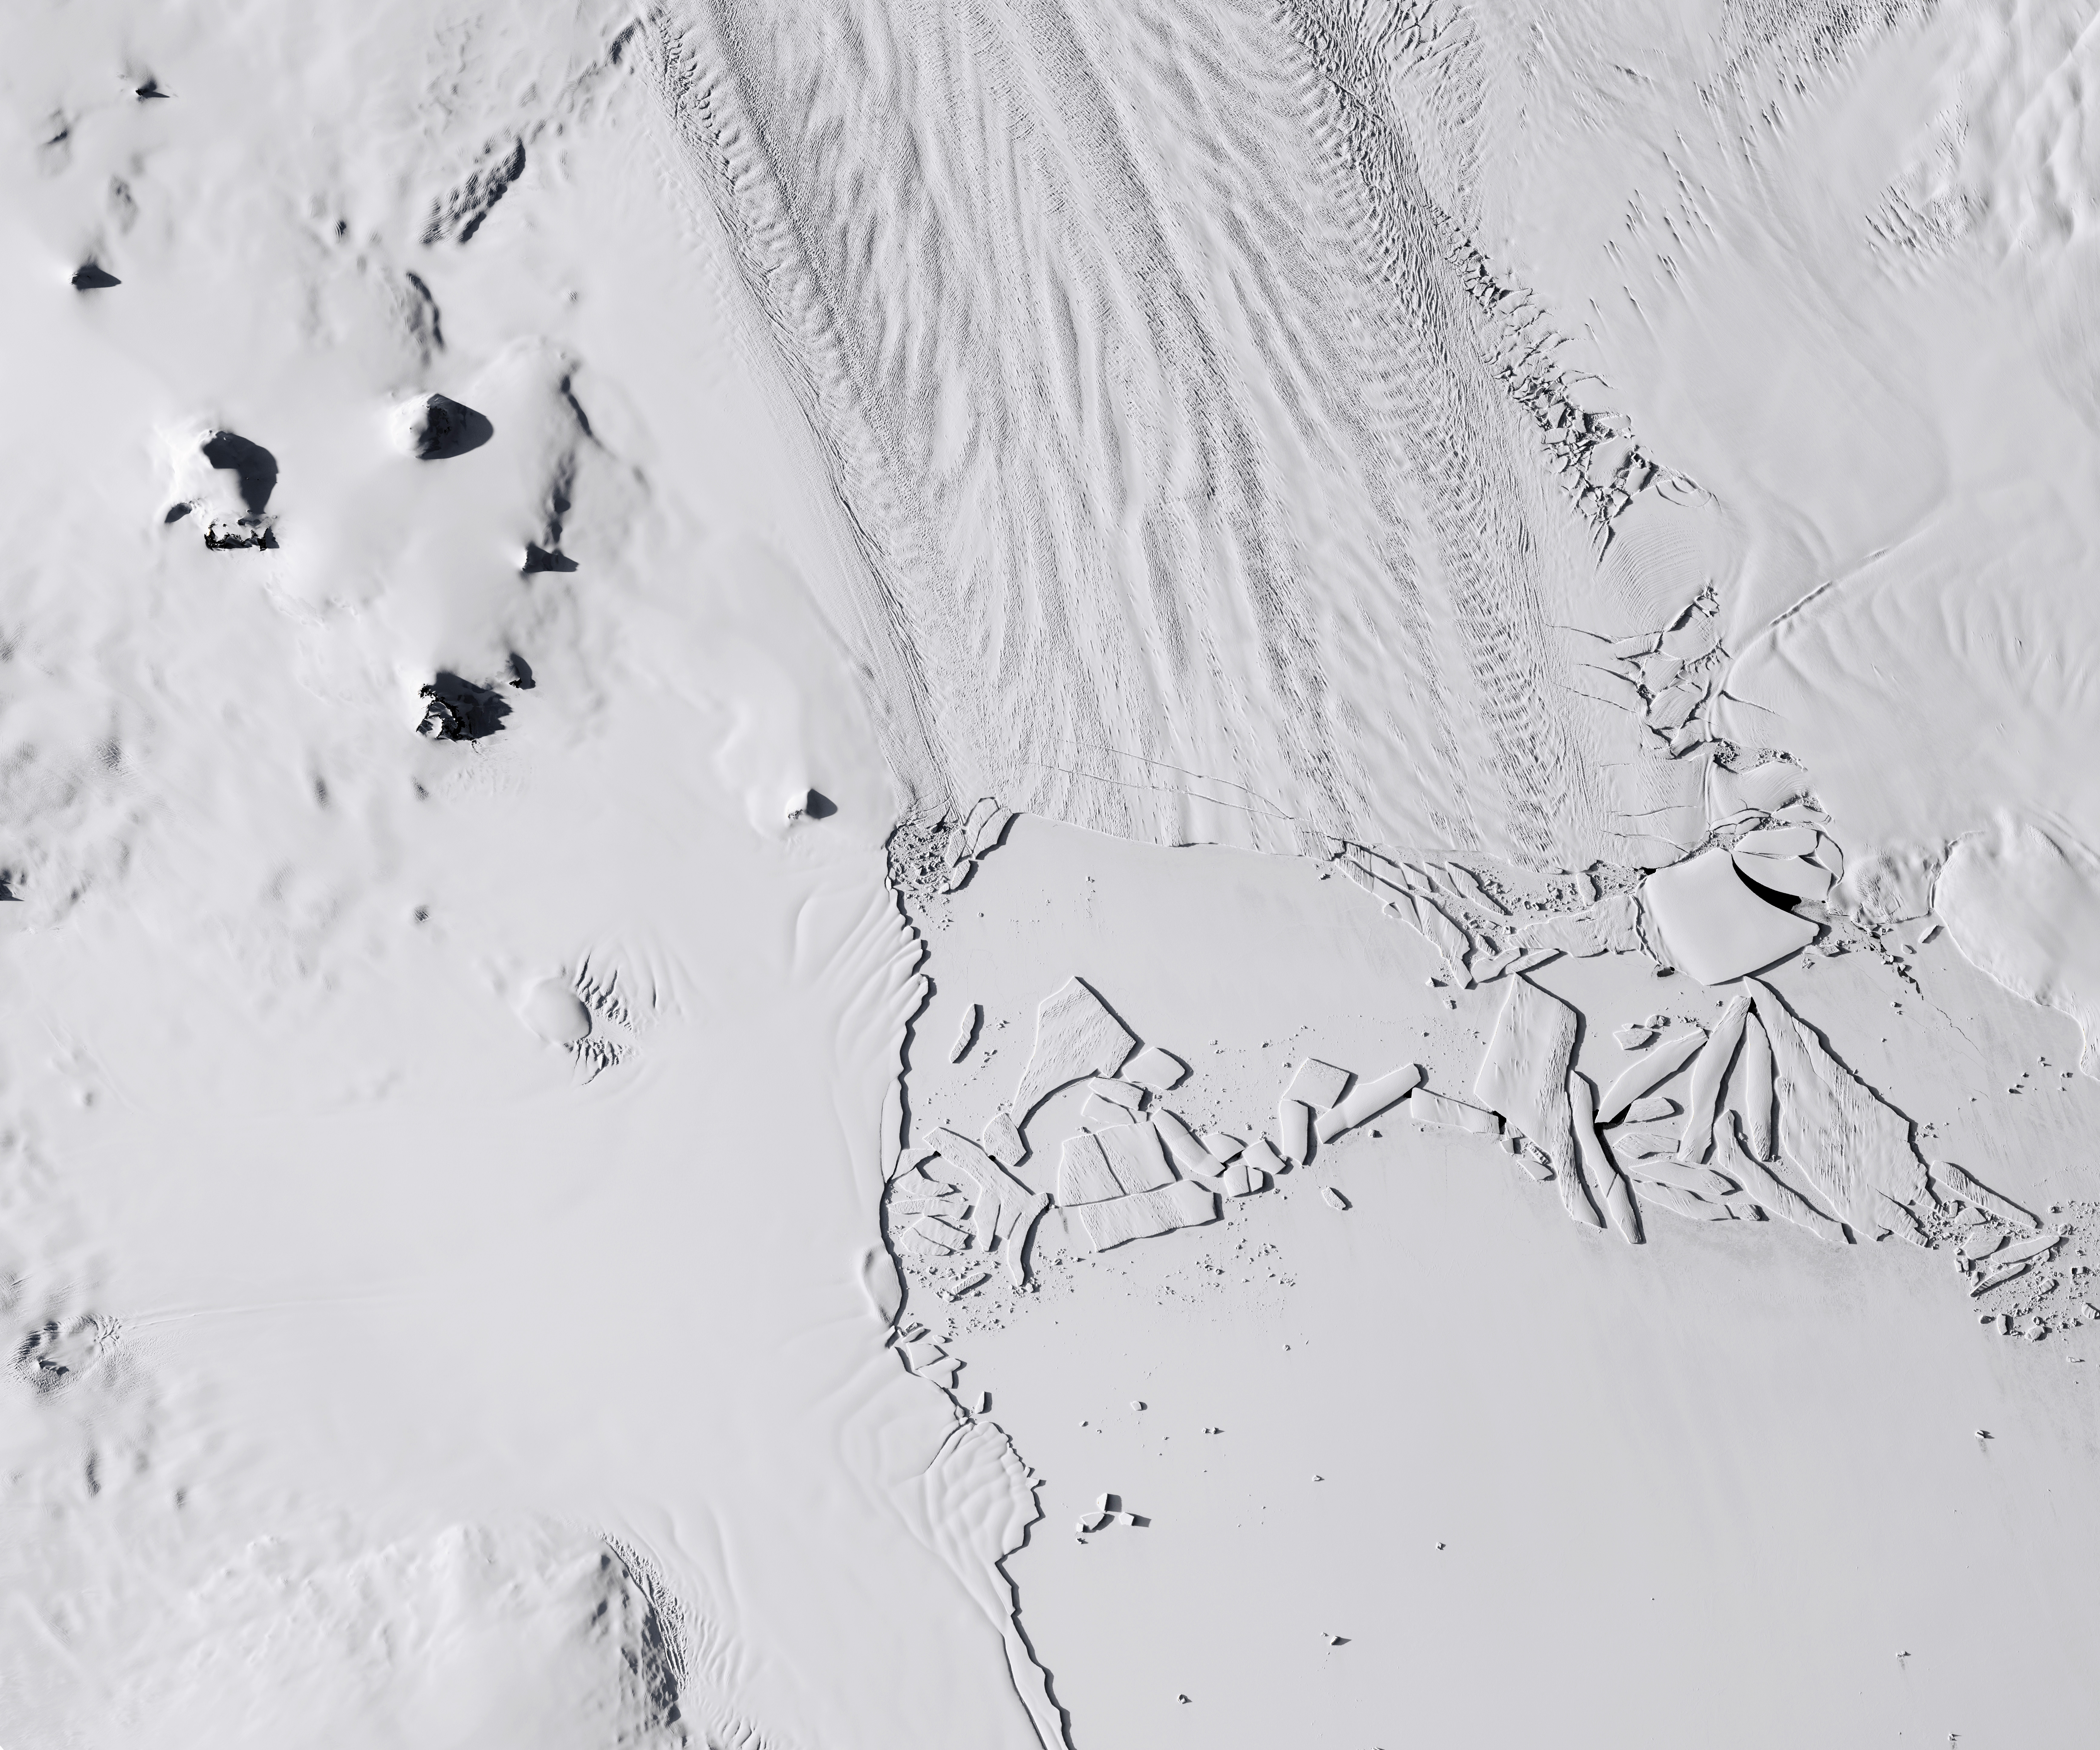 Pine Island Glacier Quickly Drops Another Iceberg - related image preview